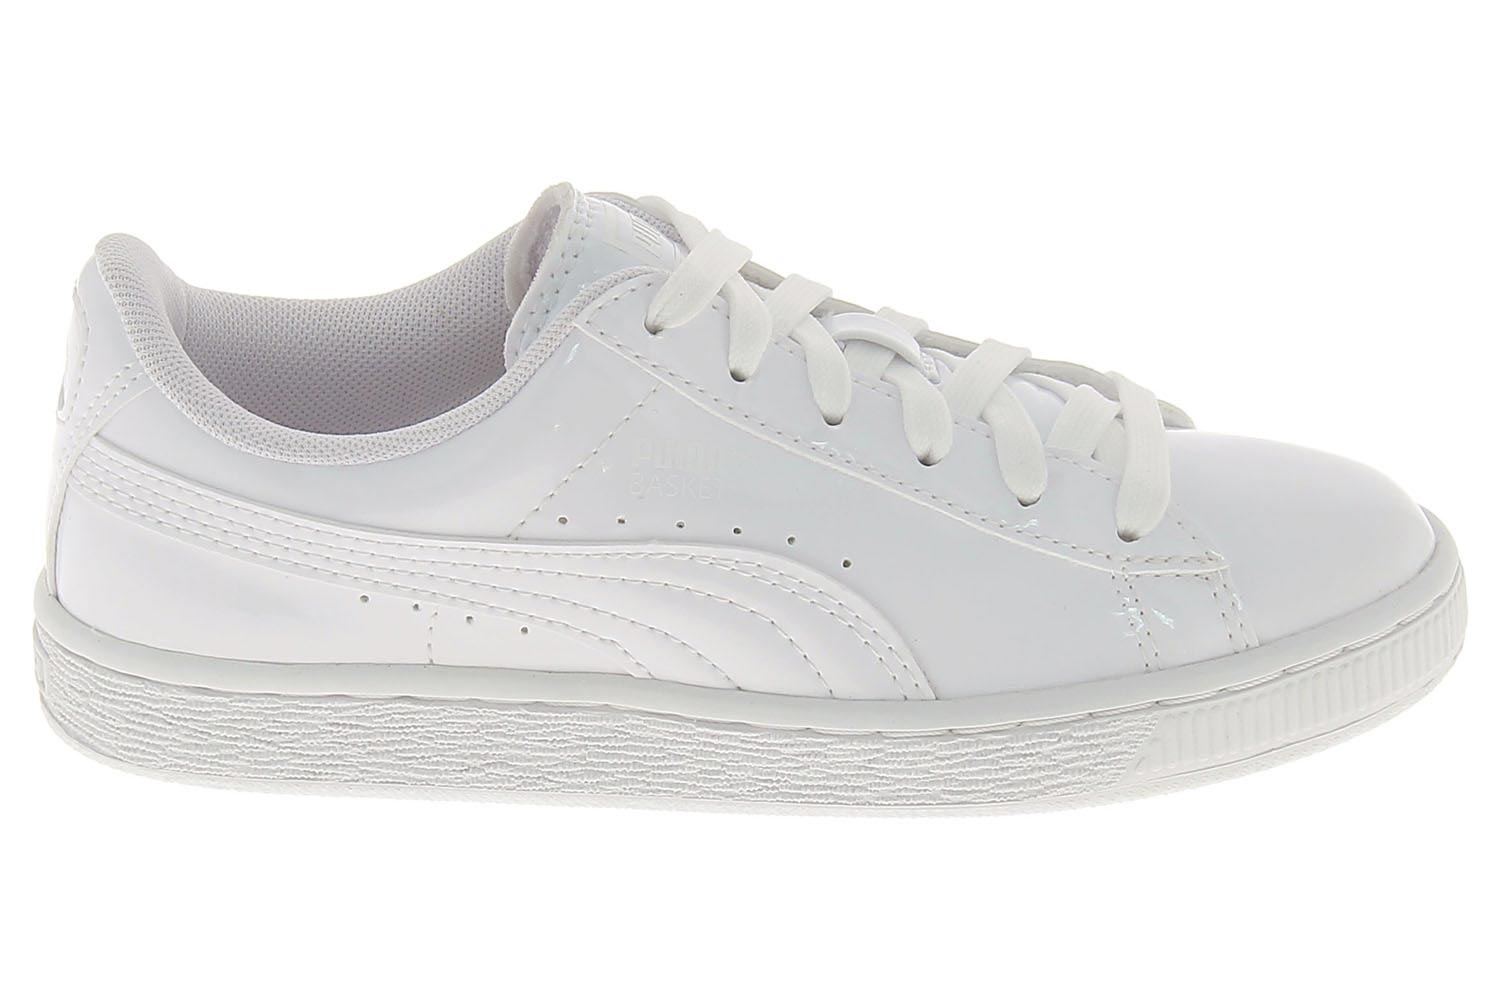 Chaussures Pour Blanc Basses Patent Basket Puma Fille IH92YEWD